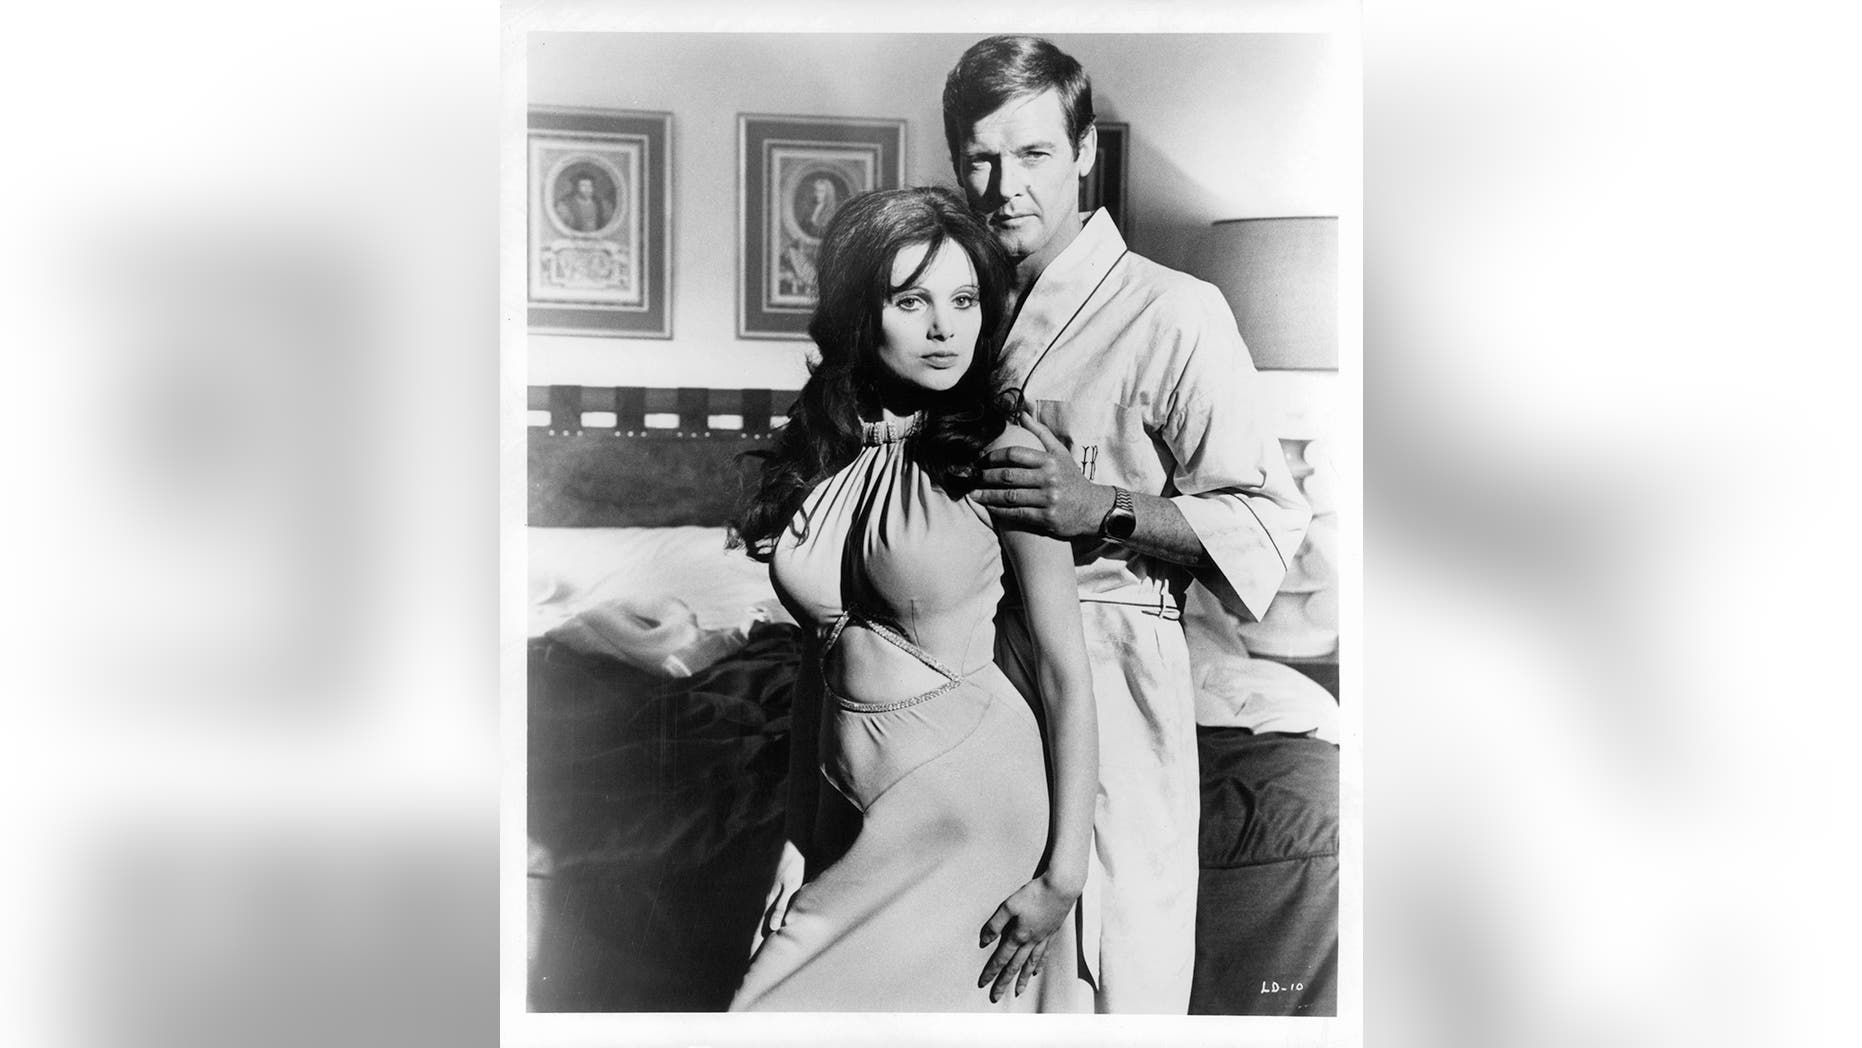 """Madeline Smith leaning against Roger Moore in a suggestive manner as he touches her arm in a scene from the film """"Live And Let Die,"""" 1973. —Photo by United Artist/Getty Images"""